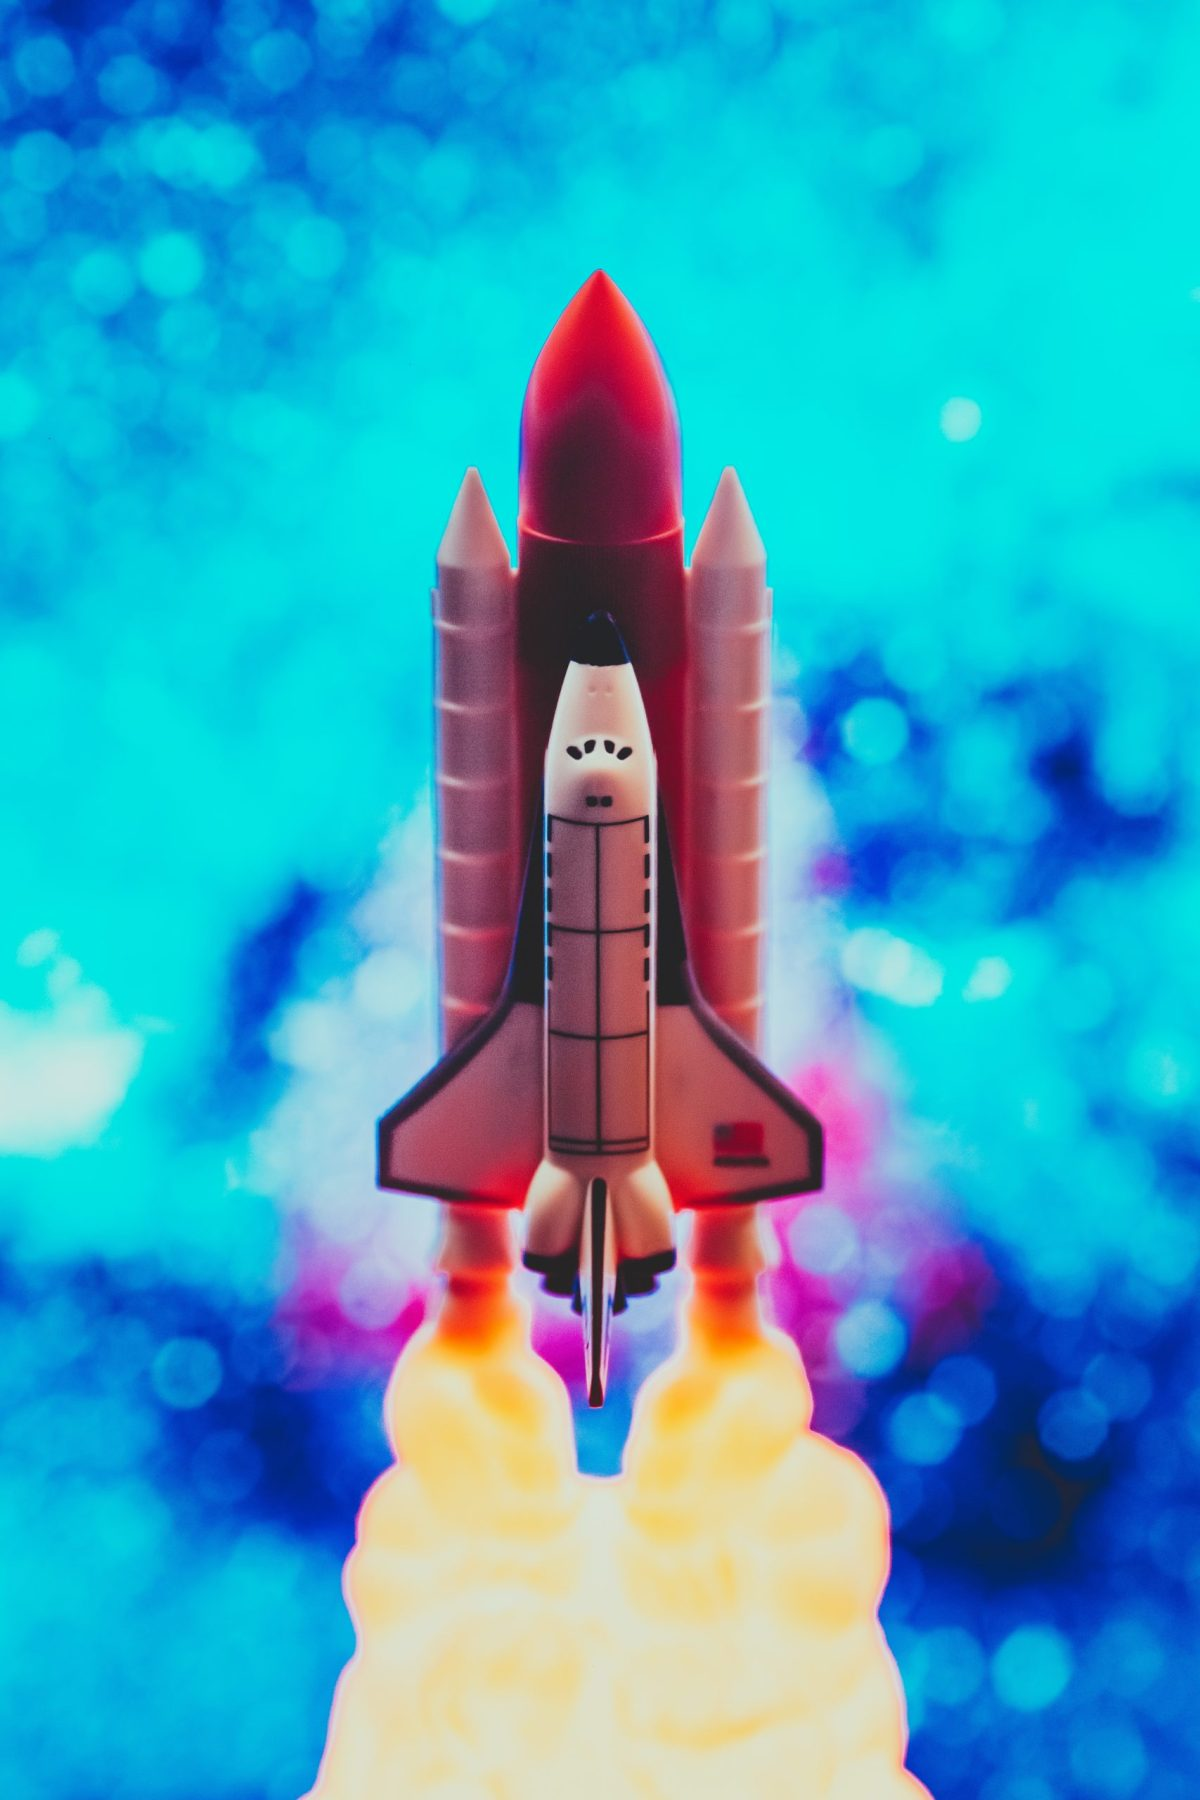 to make sales online is not rocket science